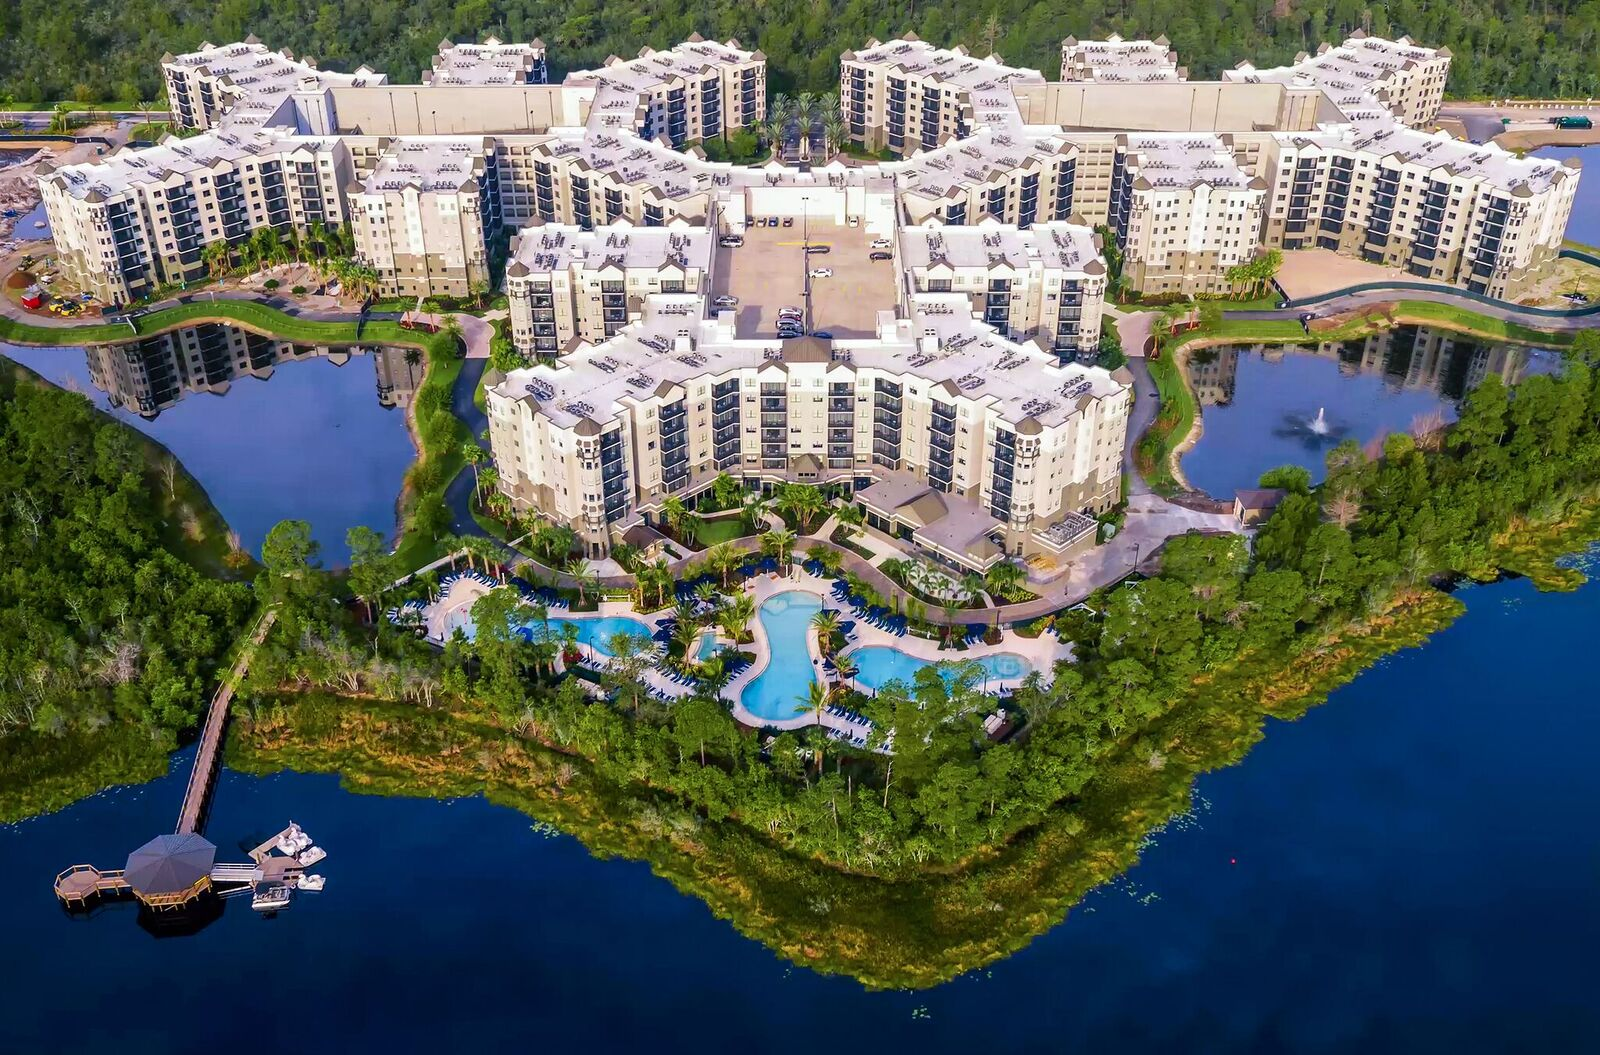 Spanning 115 acres,The Grove Resort has 16 residential buildings.